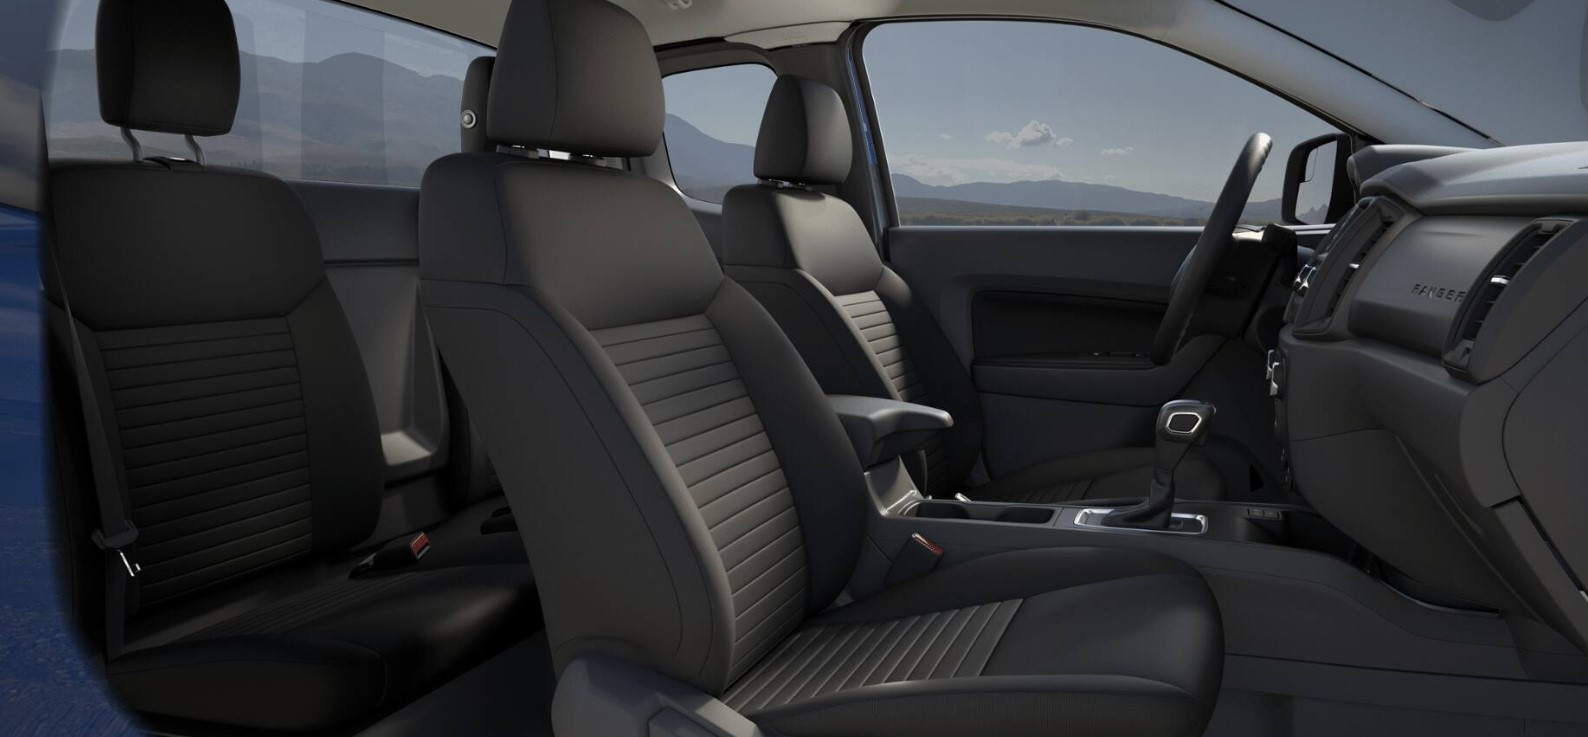 2019 Ford Ranger XL Black Interior